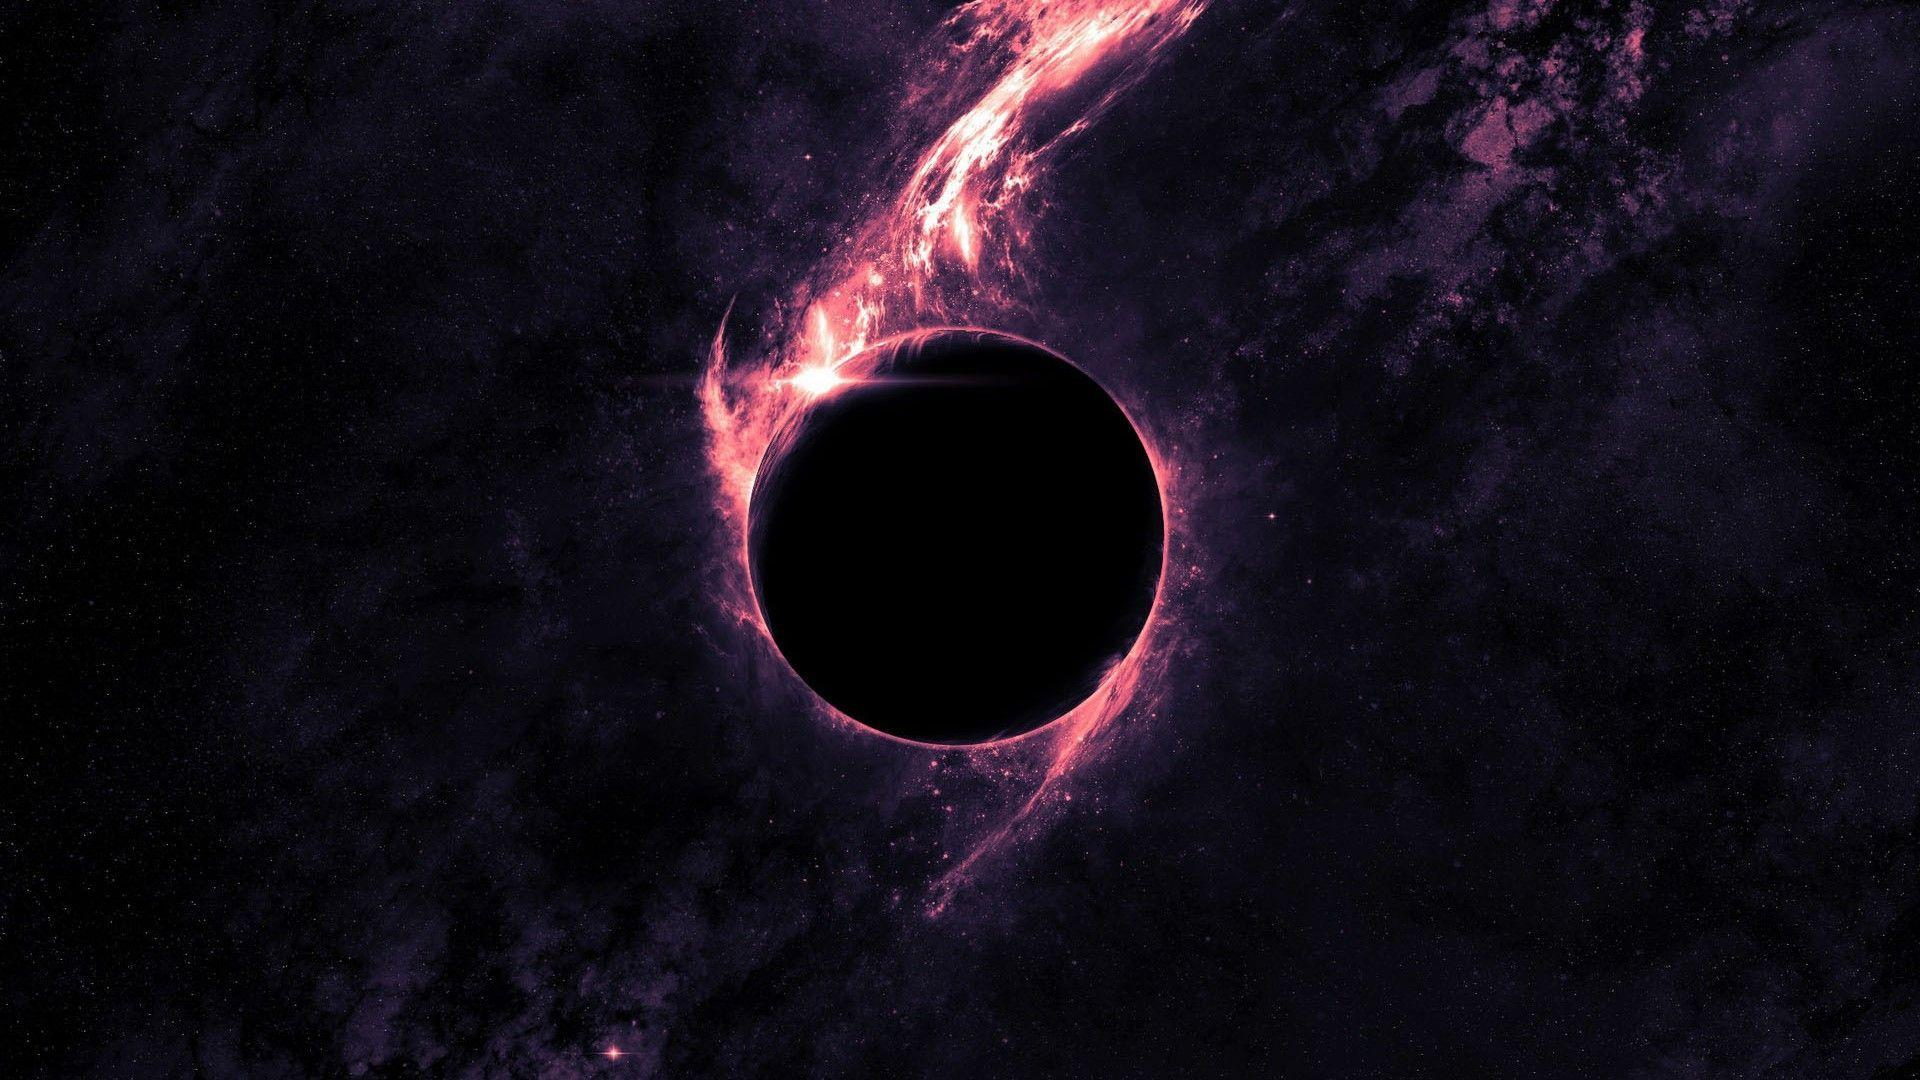 Black Hole Backgrounds - Wallpaper Cave